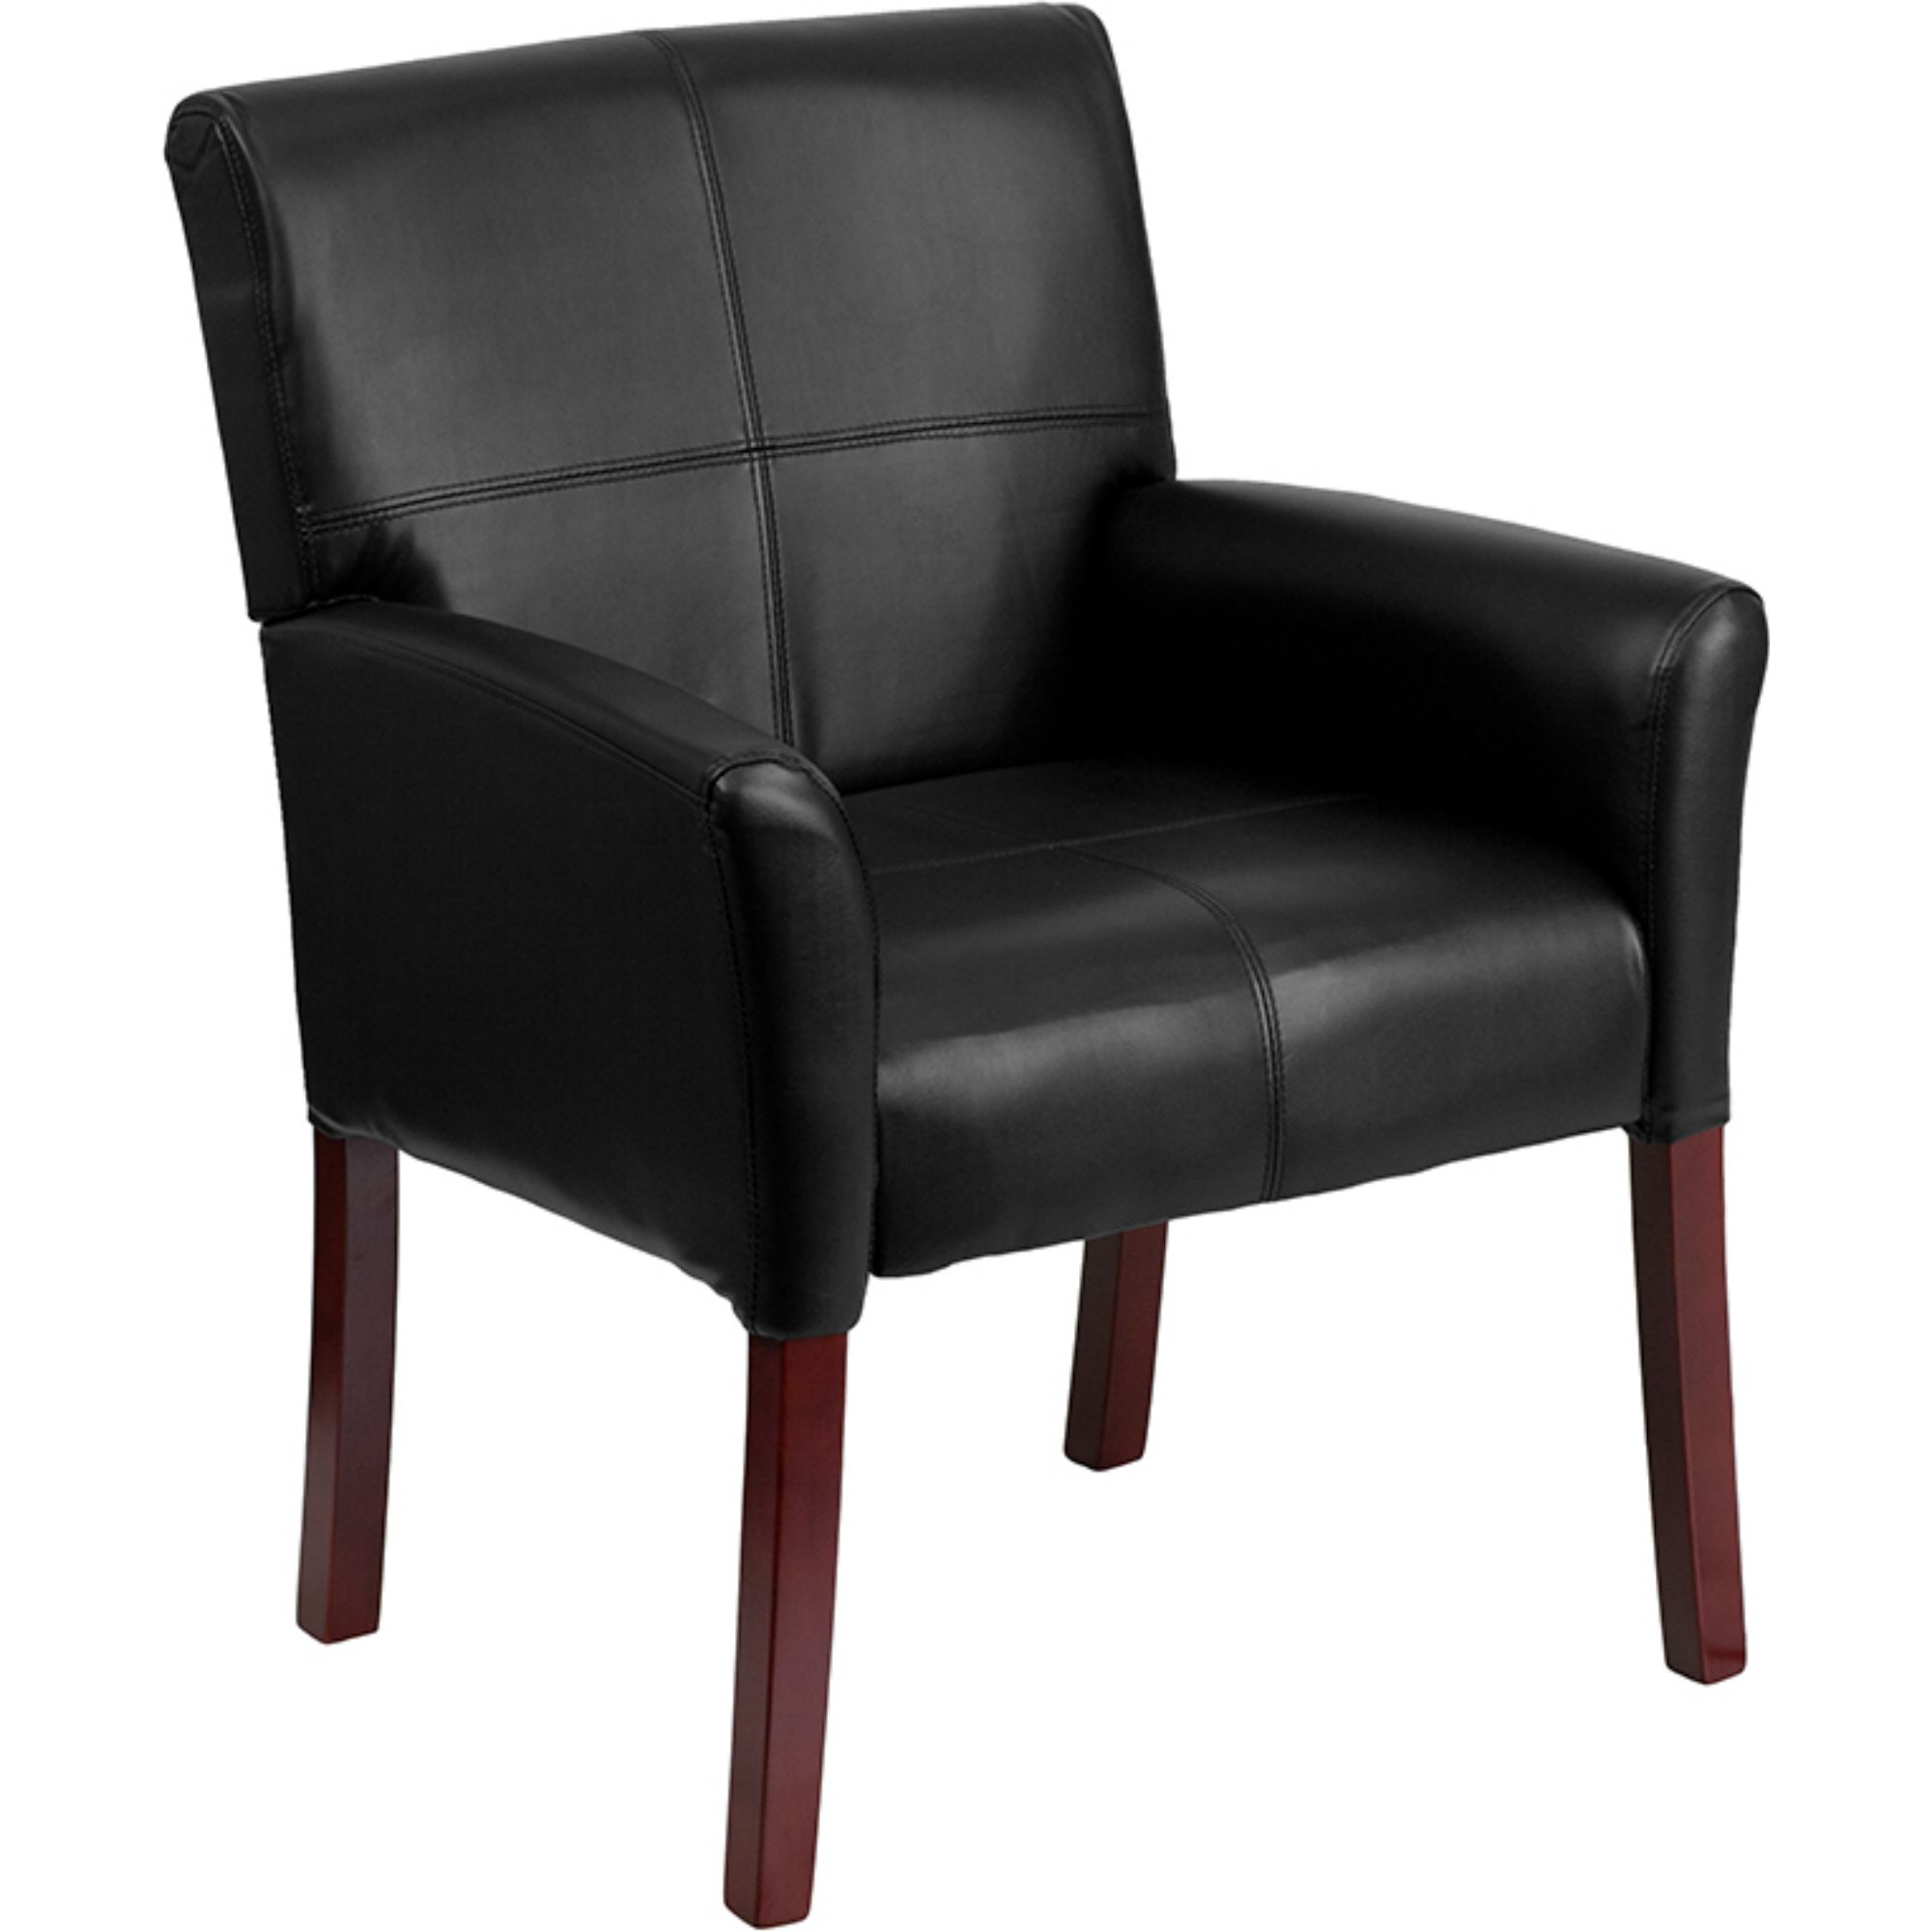 Offex Black Leather Executive Side Chair or Reception Chair with Mahogany Legs [BT-353-BK-LEA-GG]